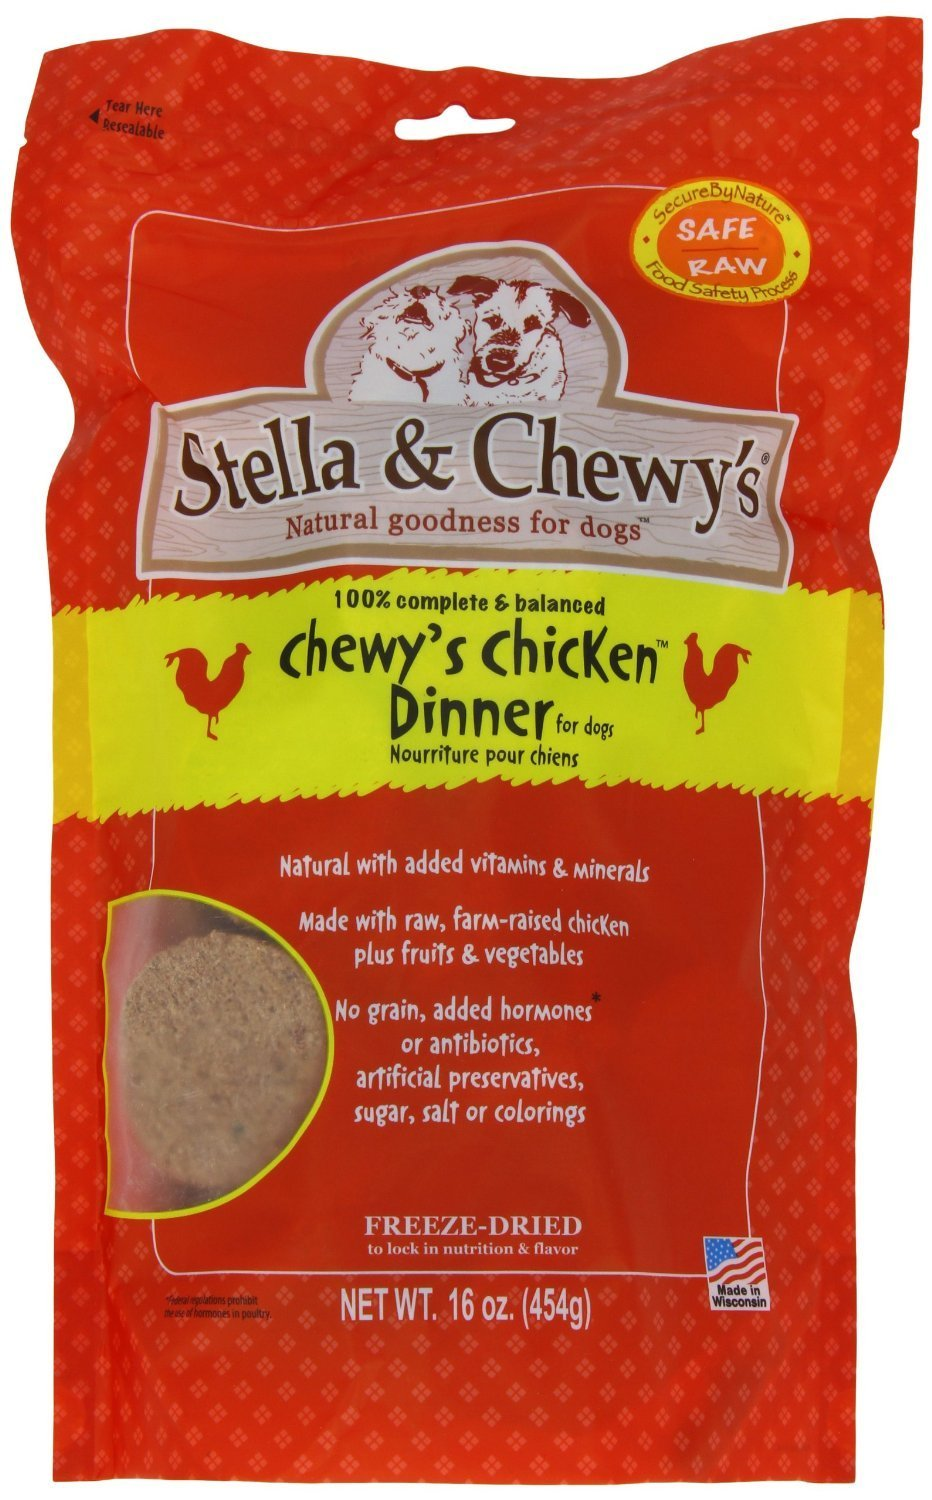 Stella & Chewy's Chicken Dog Dinners